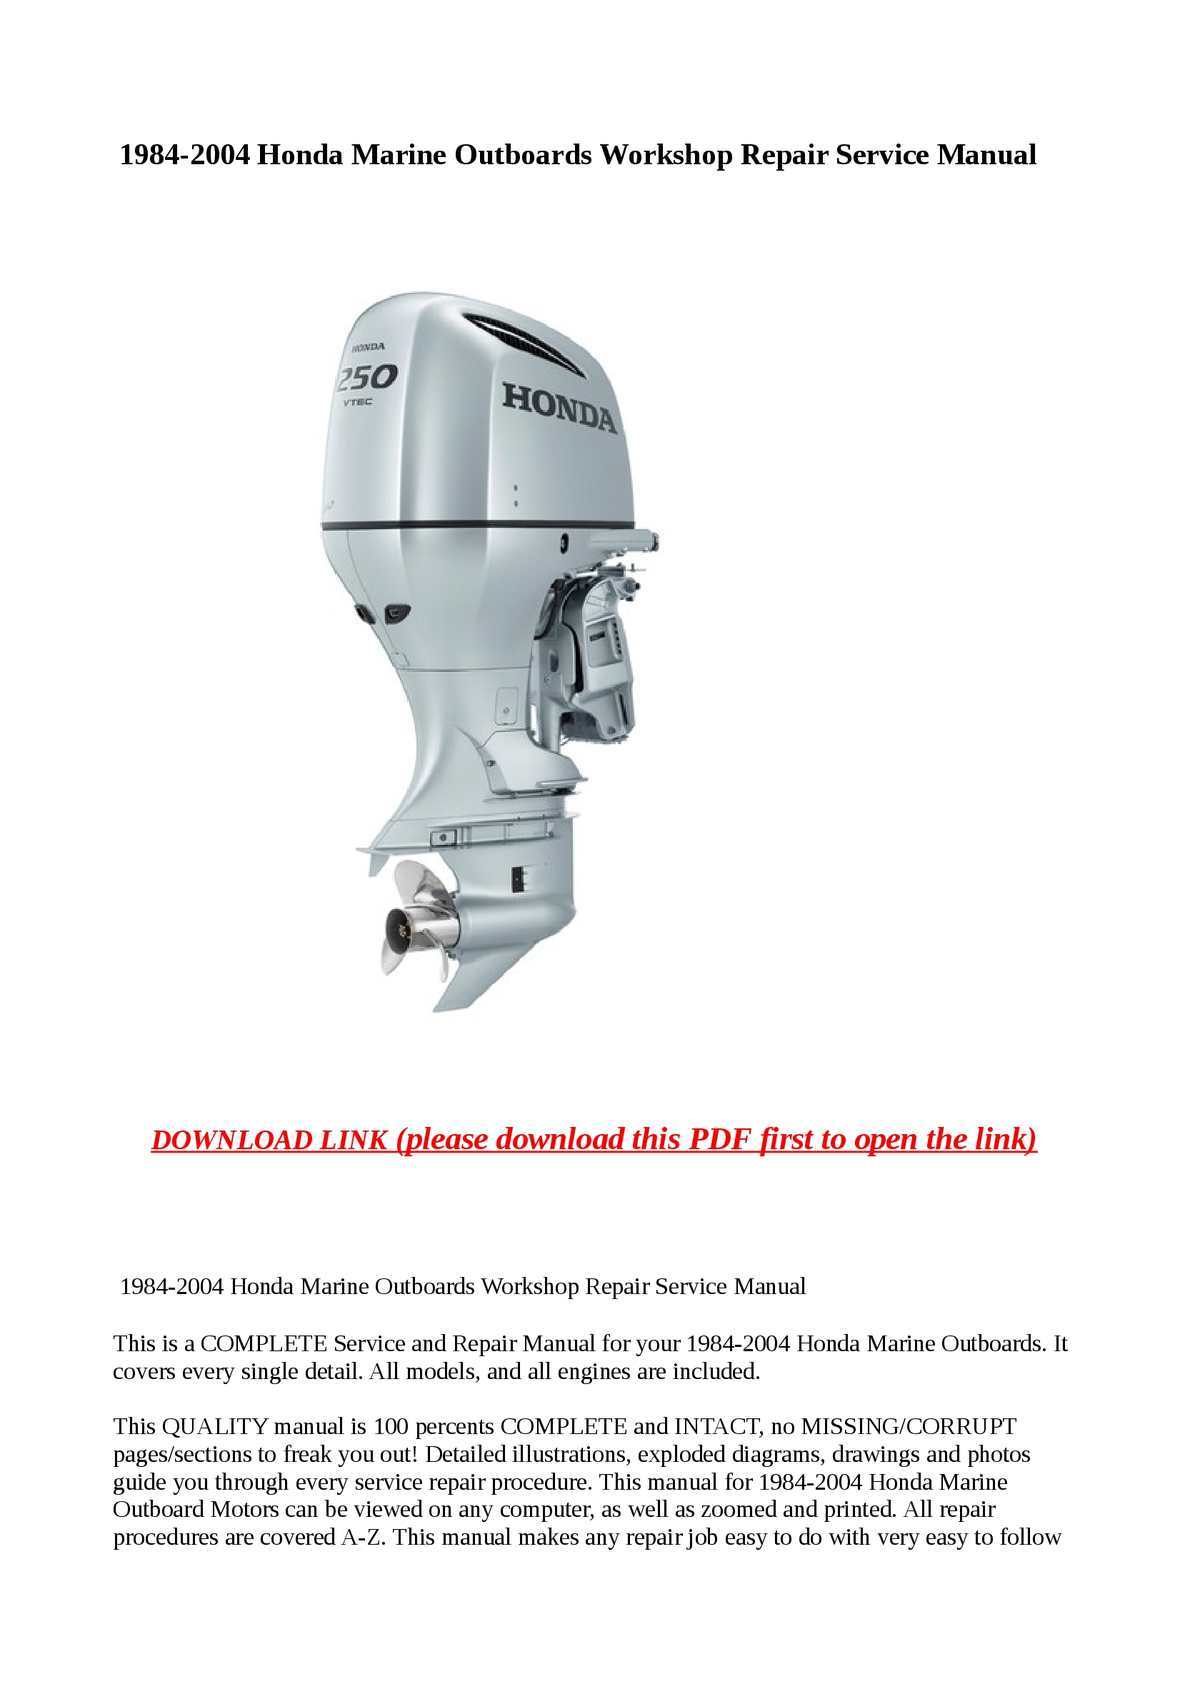 Calaméo - 1984-2004 Honda Marine Outboards Workshop Repair Service Manual